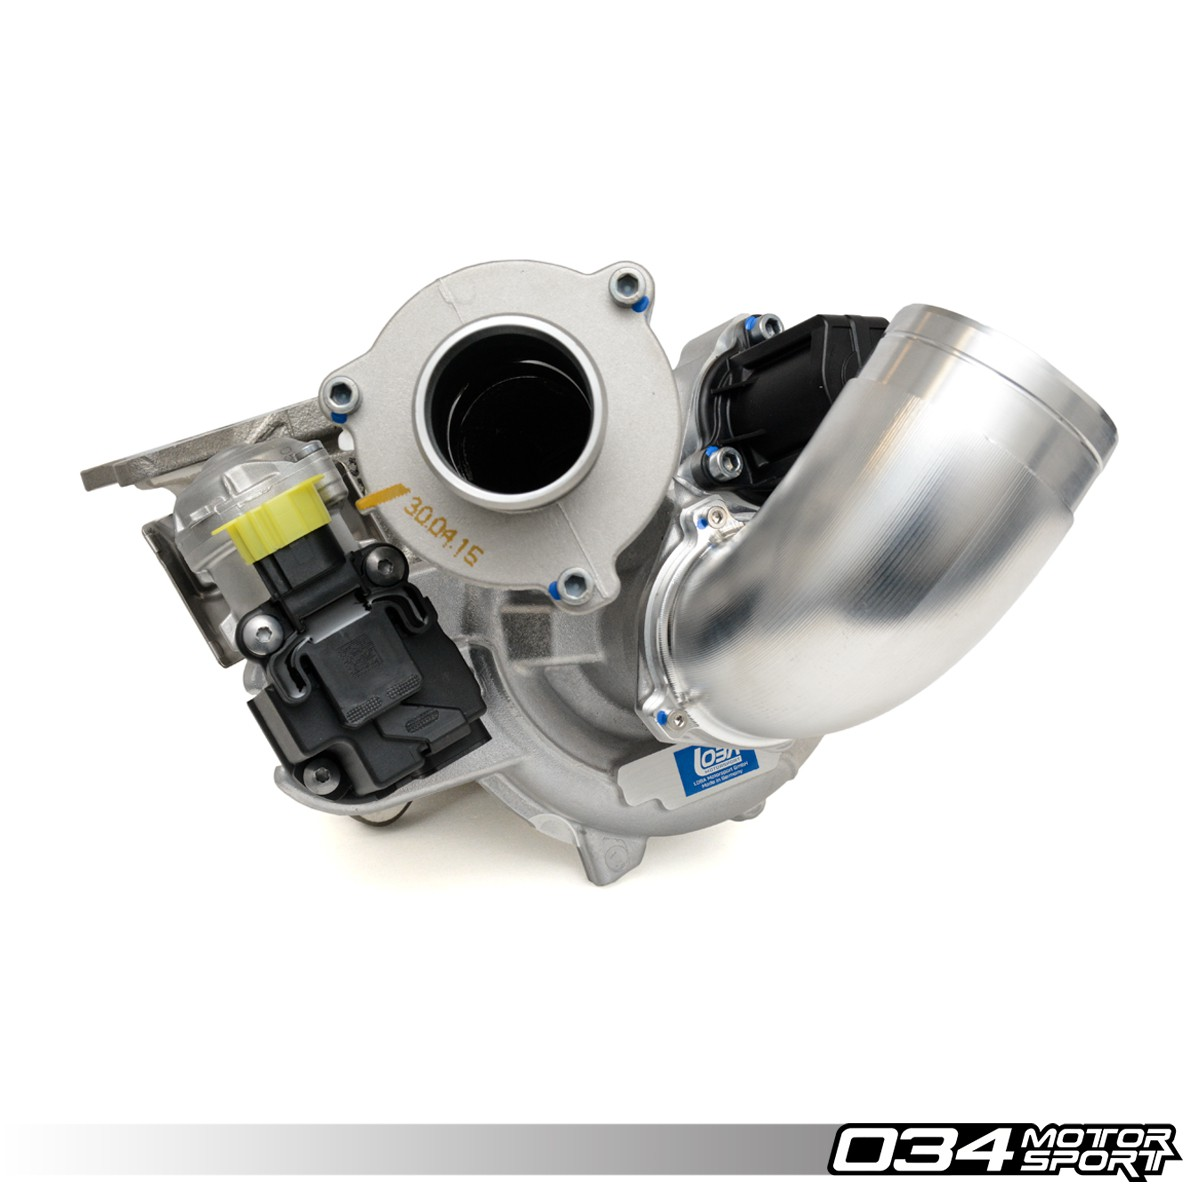 R460 Hybrid Turbocharger System for 8V Audi S3 & MkVII Volkswagen Golf R 2.0 TFSI (MQB)